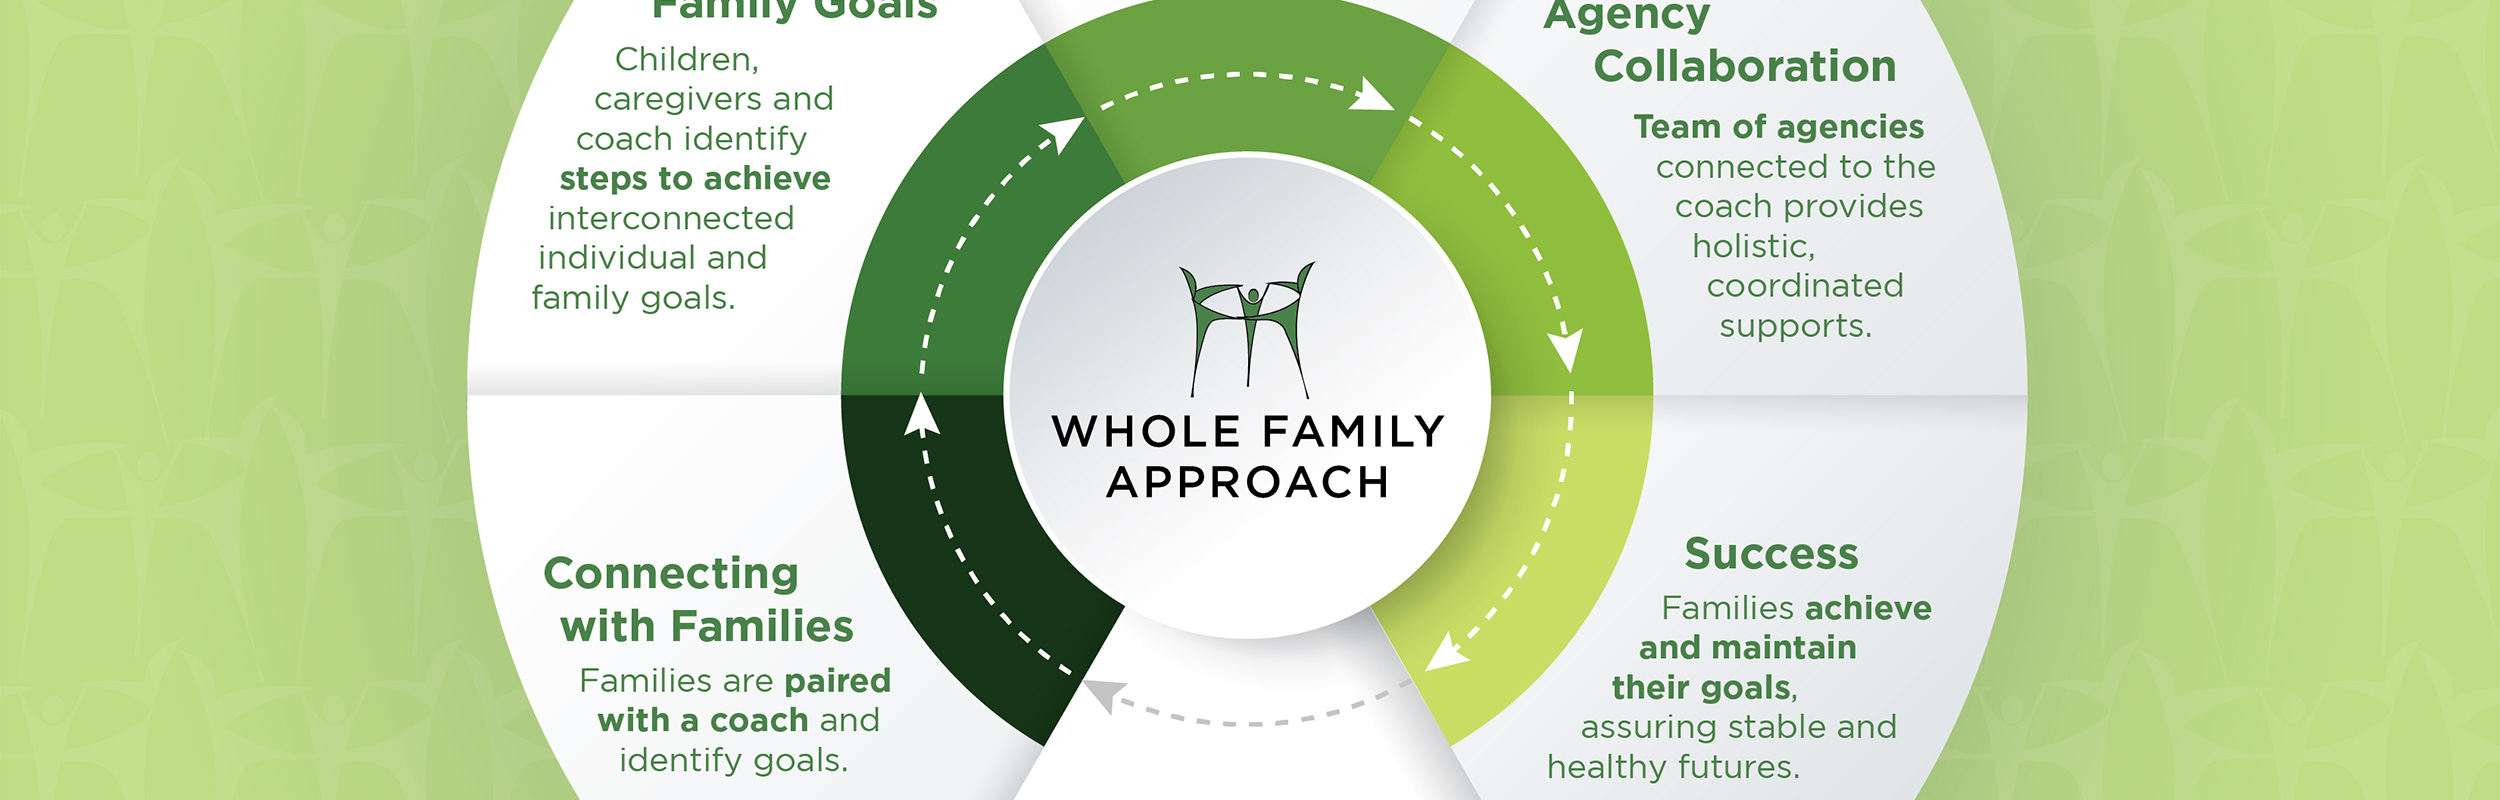 Whole Family Approach Infographic